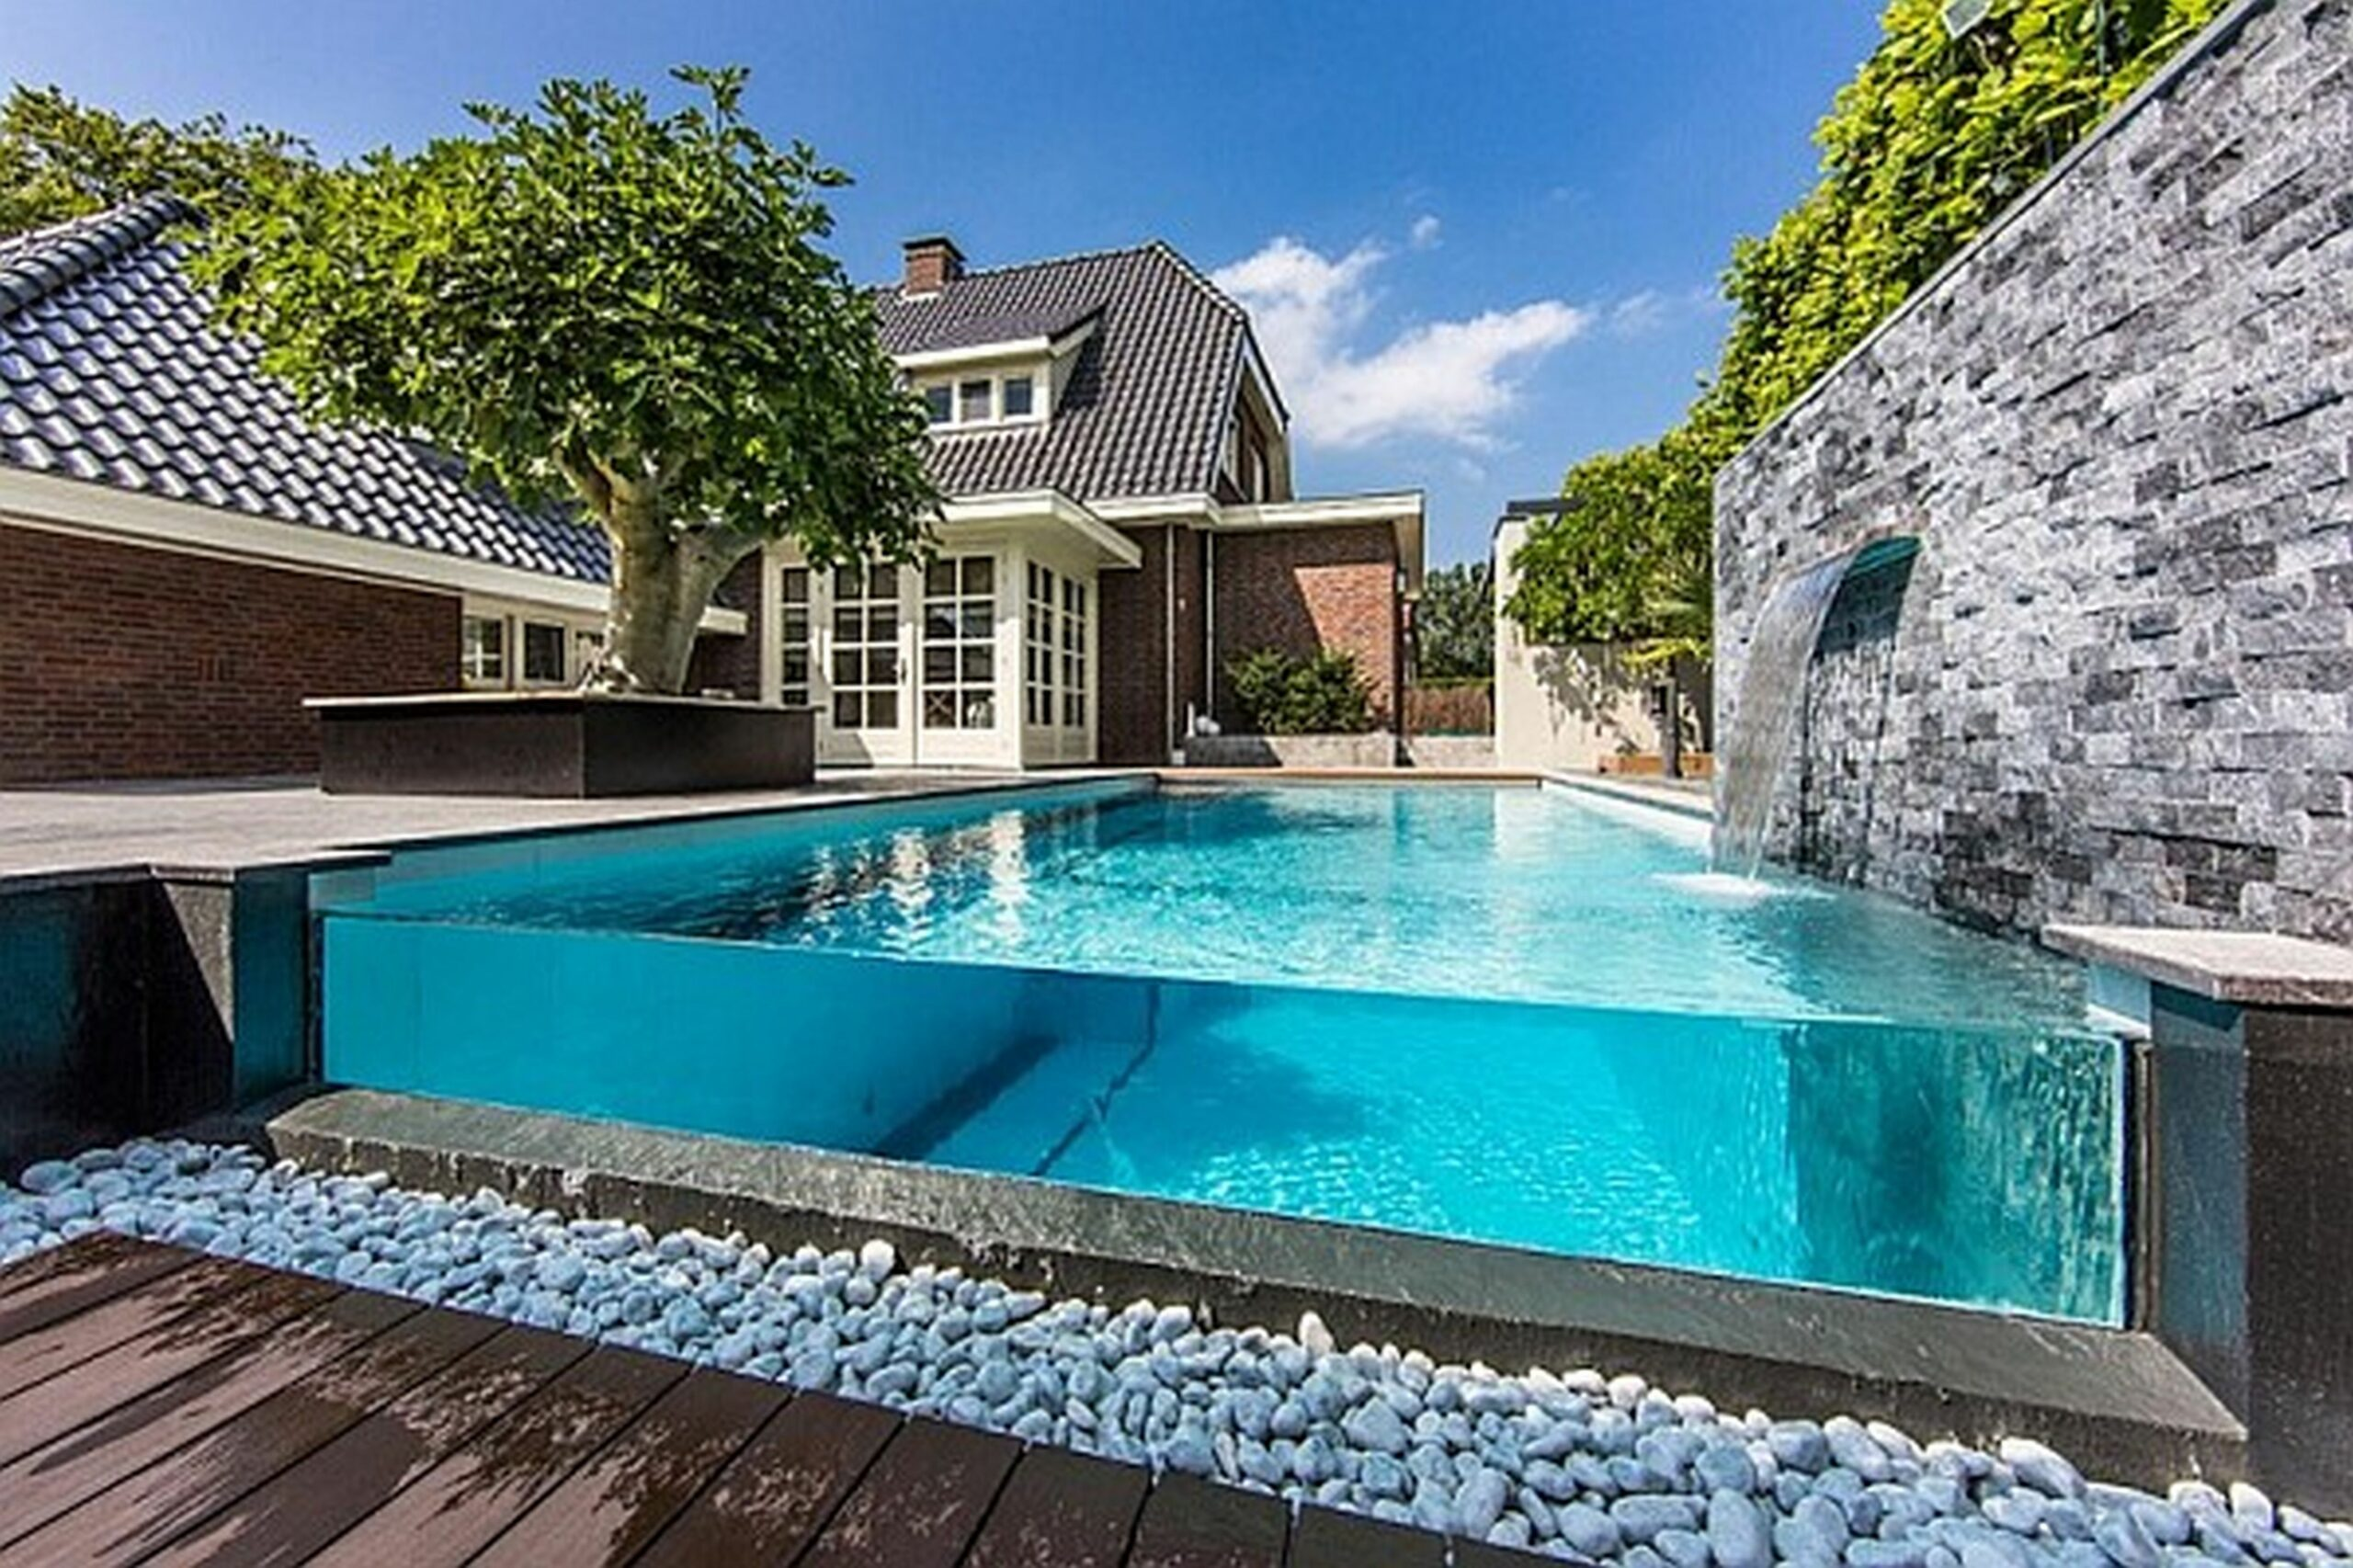 Swimming Pool Houses Designs Home Design Ideas With Pic Of Luxury ..